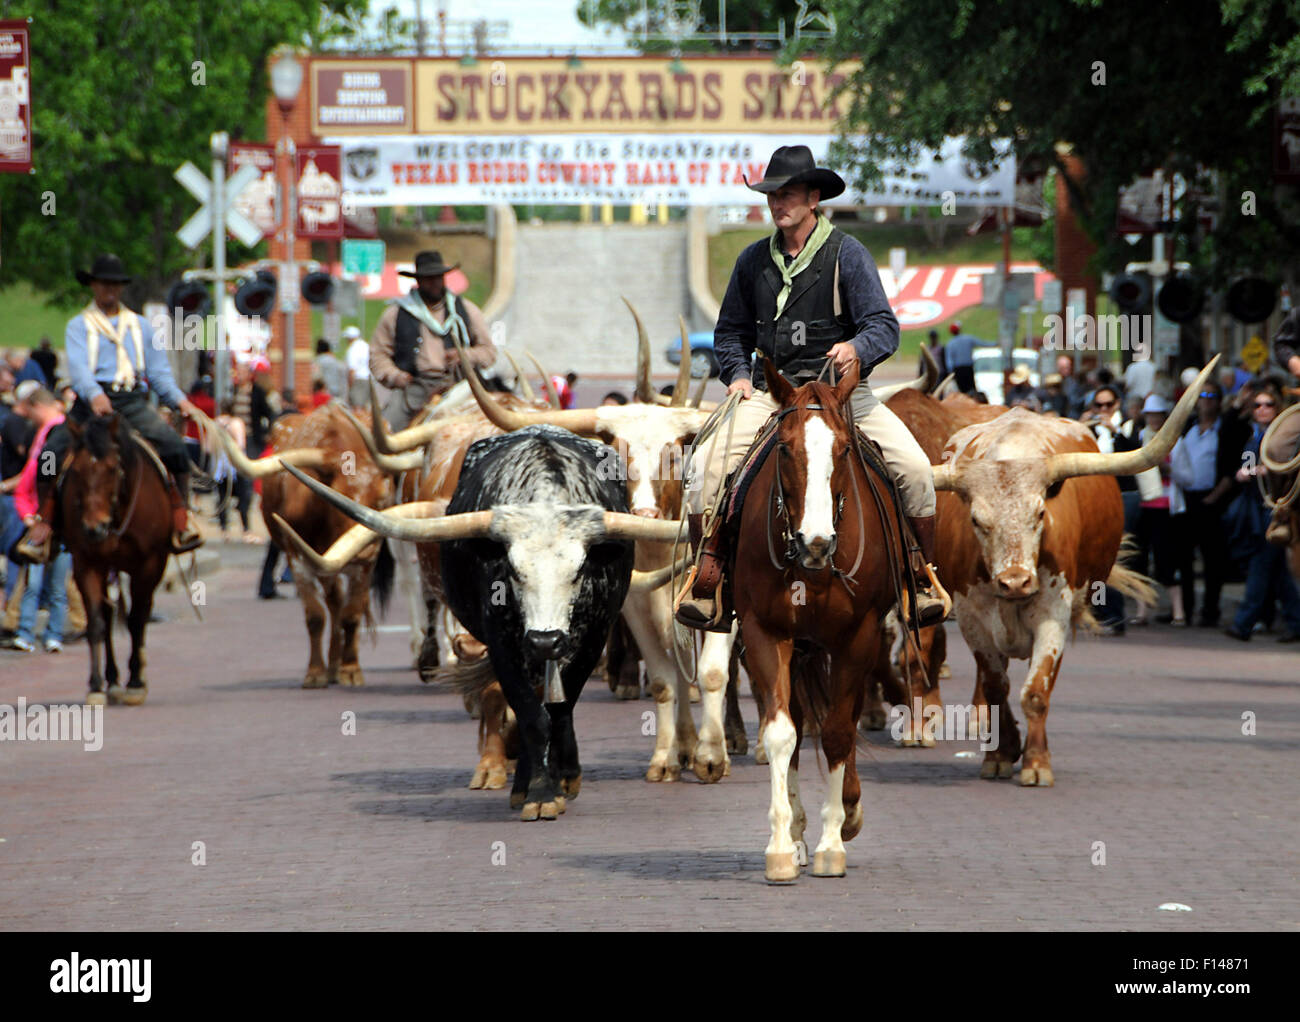 Fort Worth Texas Cattle Drive At Stockyards Stock Photo Alamy